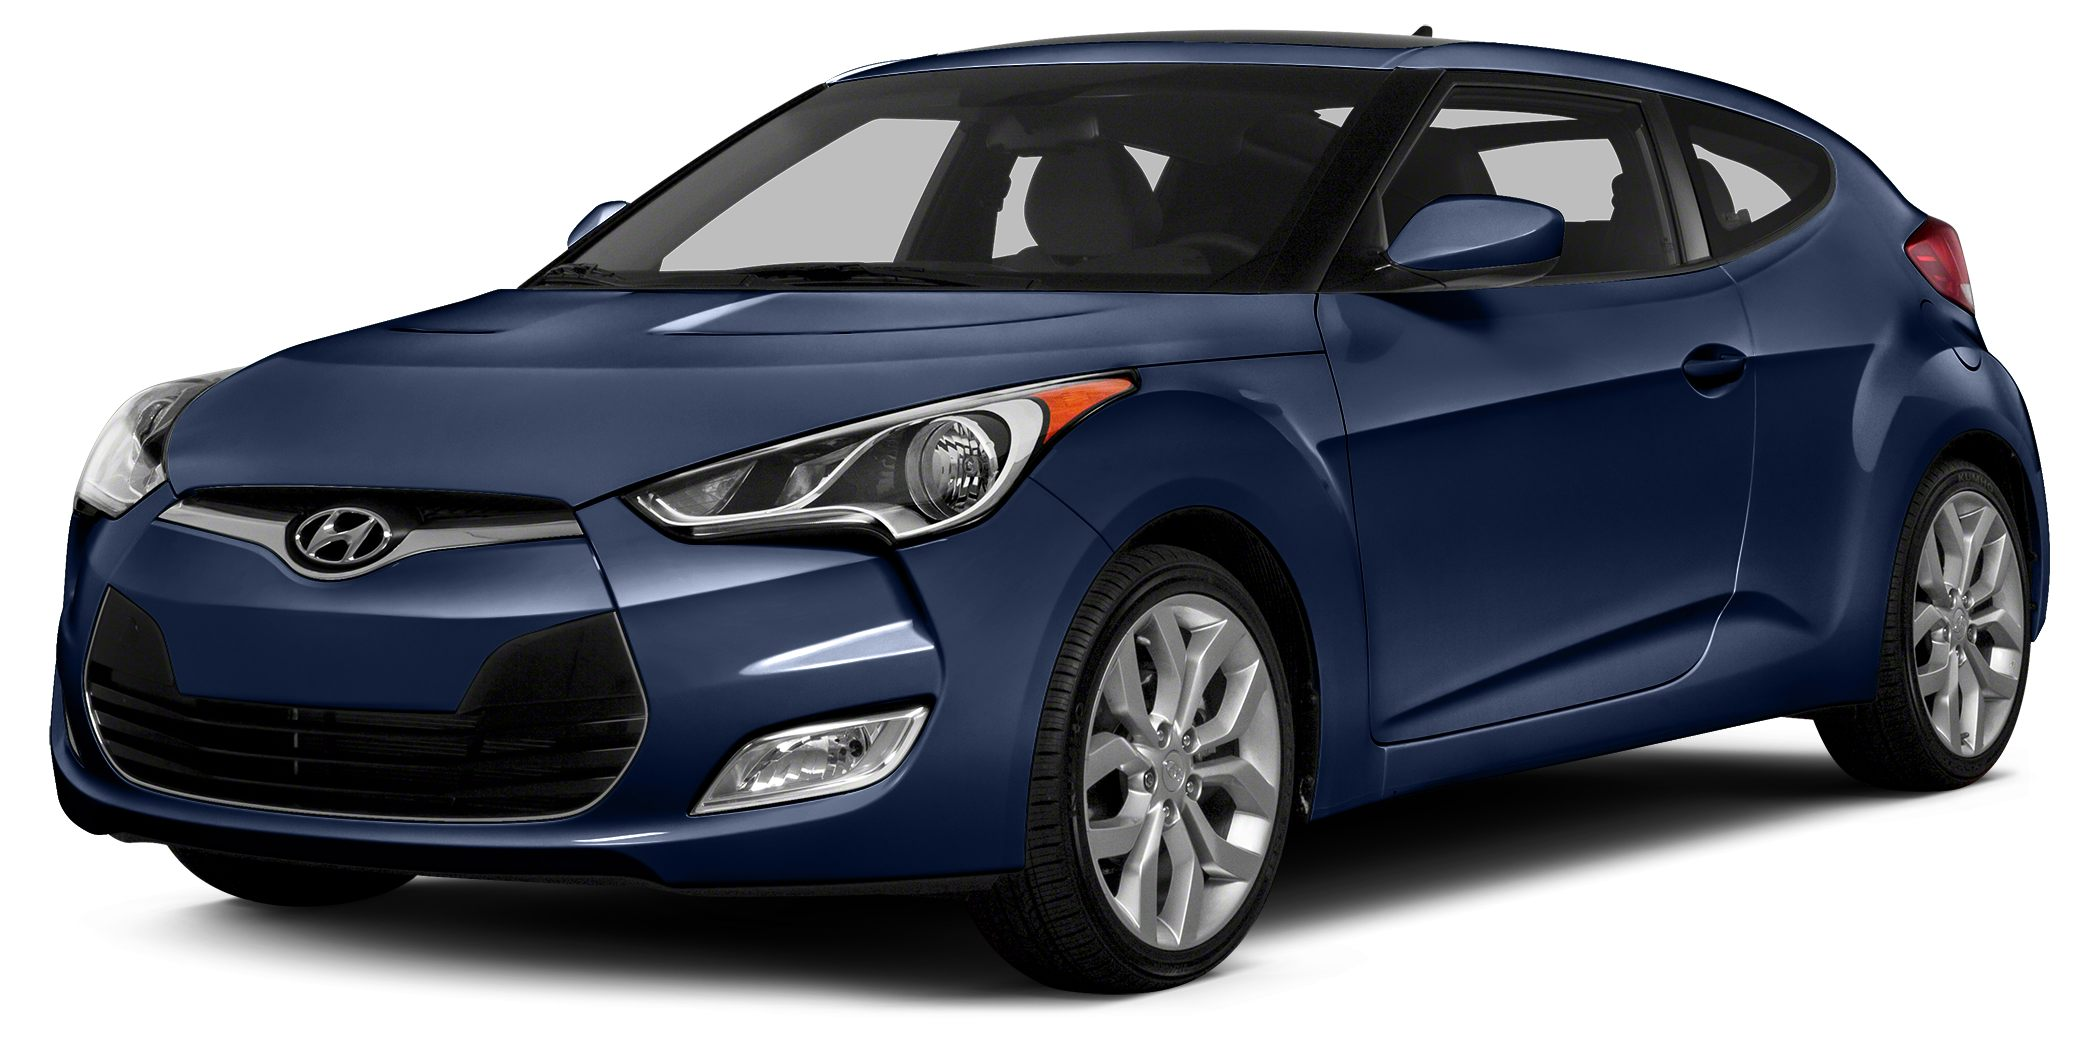 2013 Hyundai Veloster REMIX One Year Free Maintanence and Clean Carfax Hey Look right here At